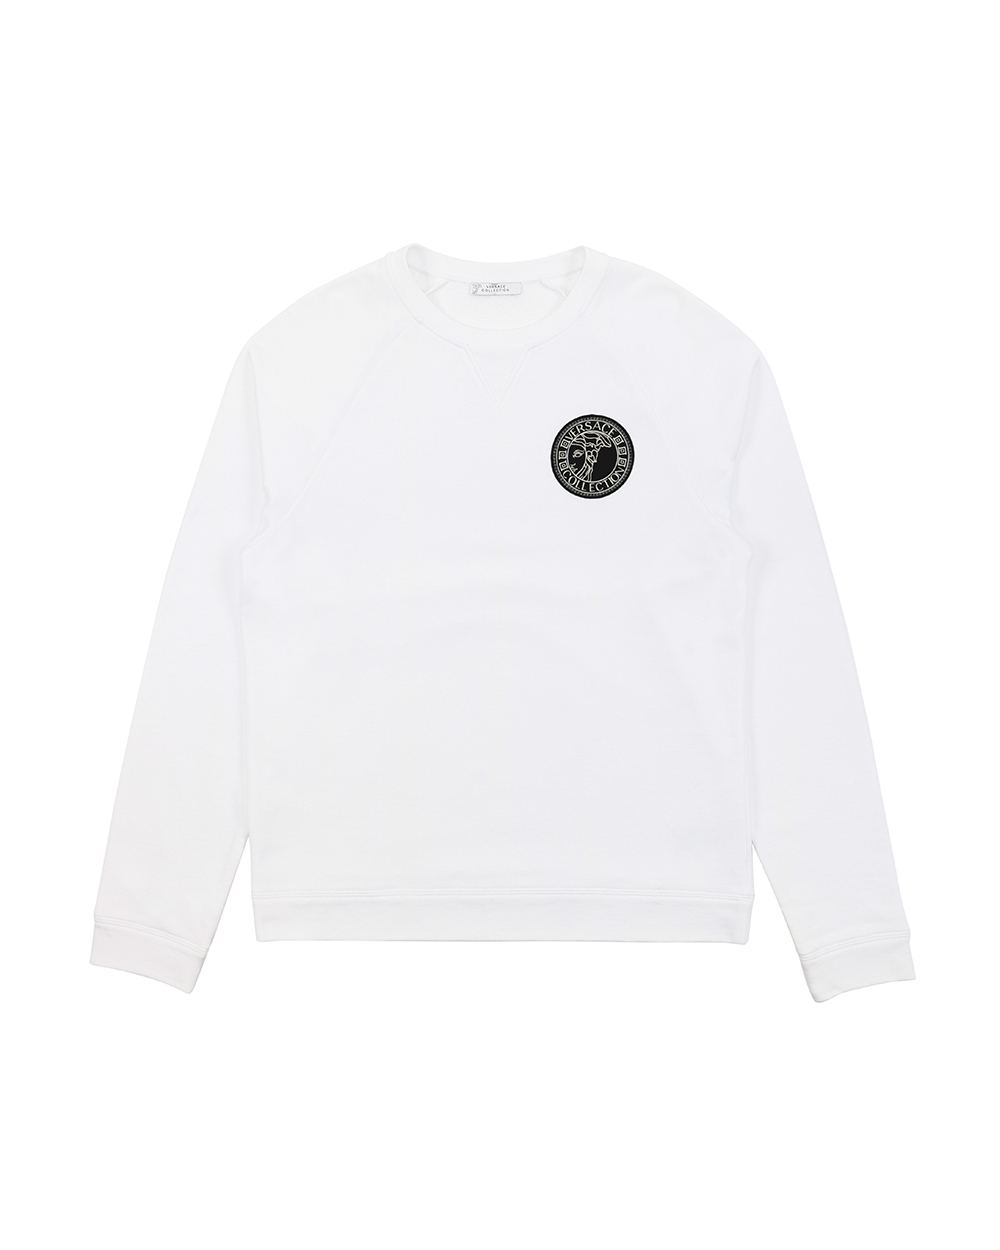 Cotton Crew Neck Long Sleeves Sweatshirt